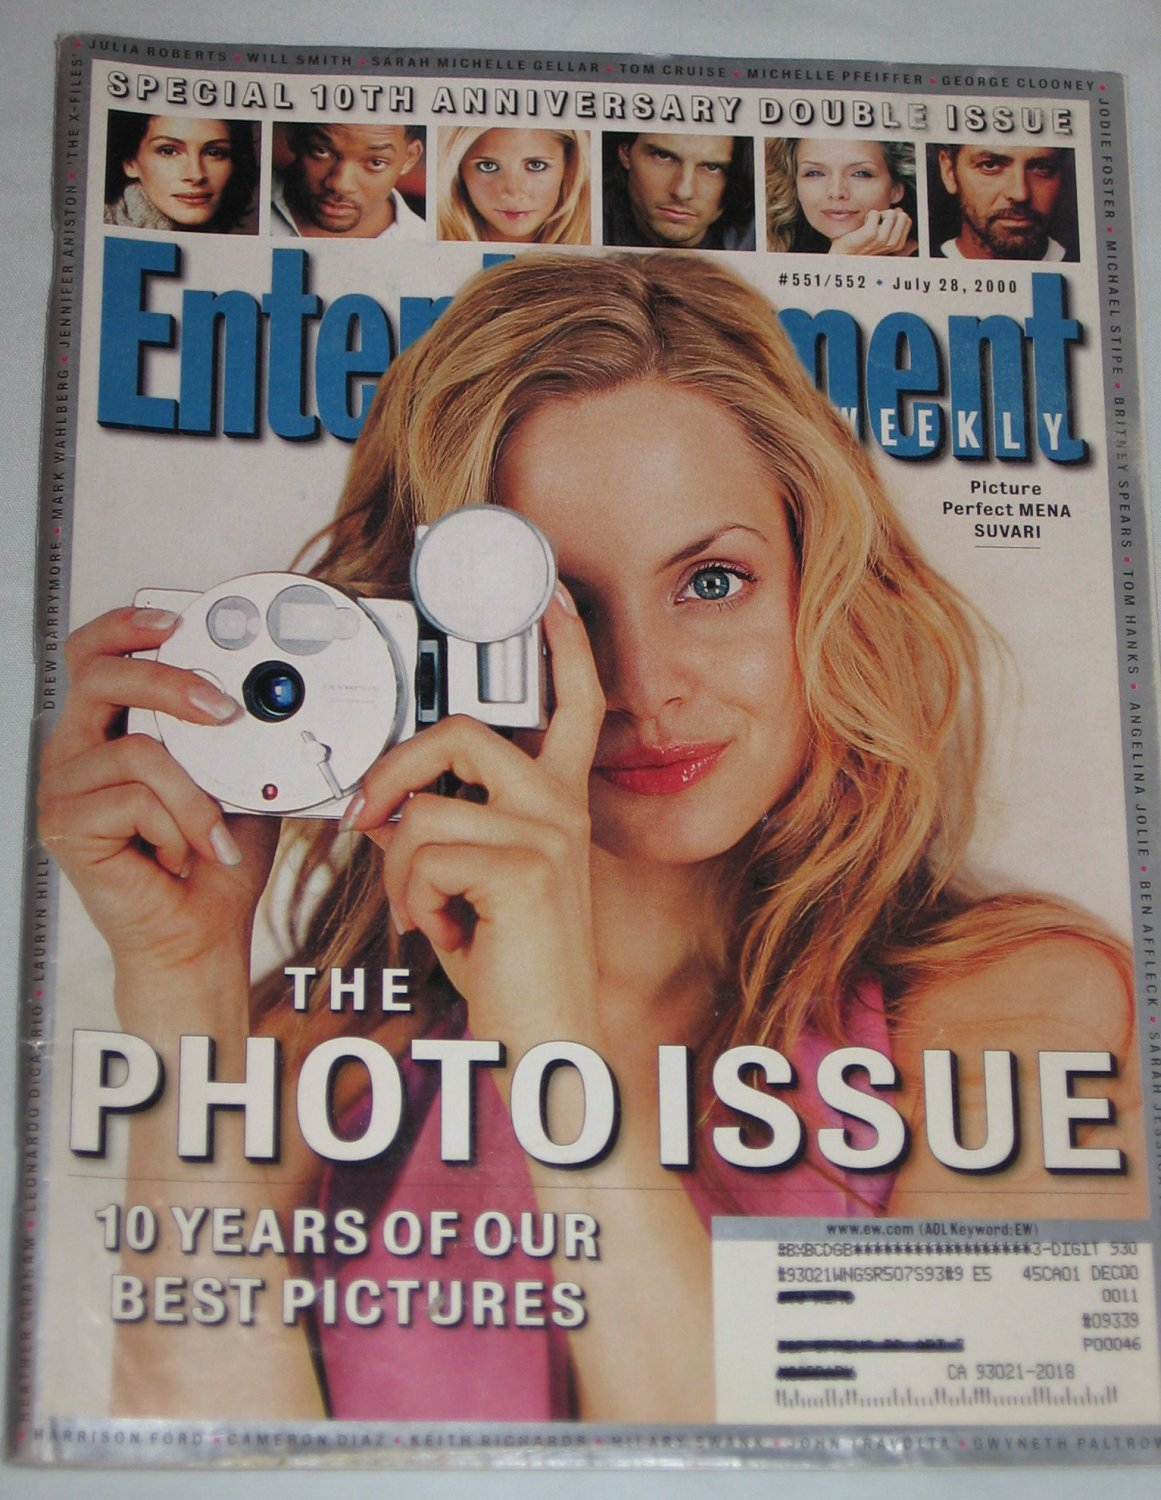 ENTERTAINMENT WEEKLY 10th Anniversary Double Issue Magazine 551 552 Best Pictures July 2000